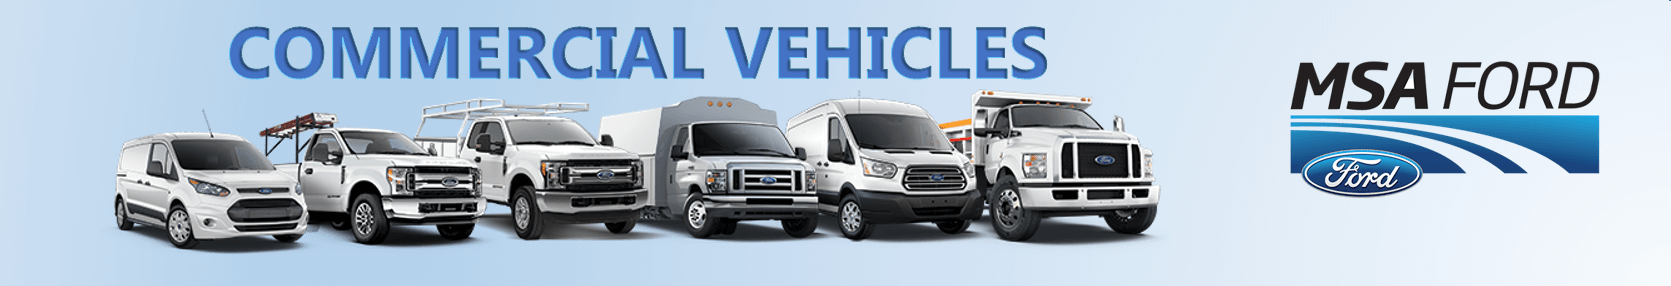 MSA Ford Commercial Vehicles Abbotsford image